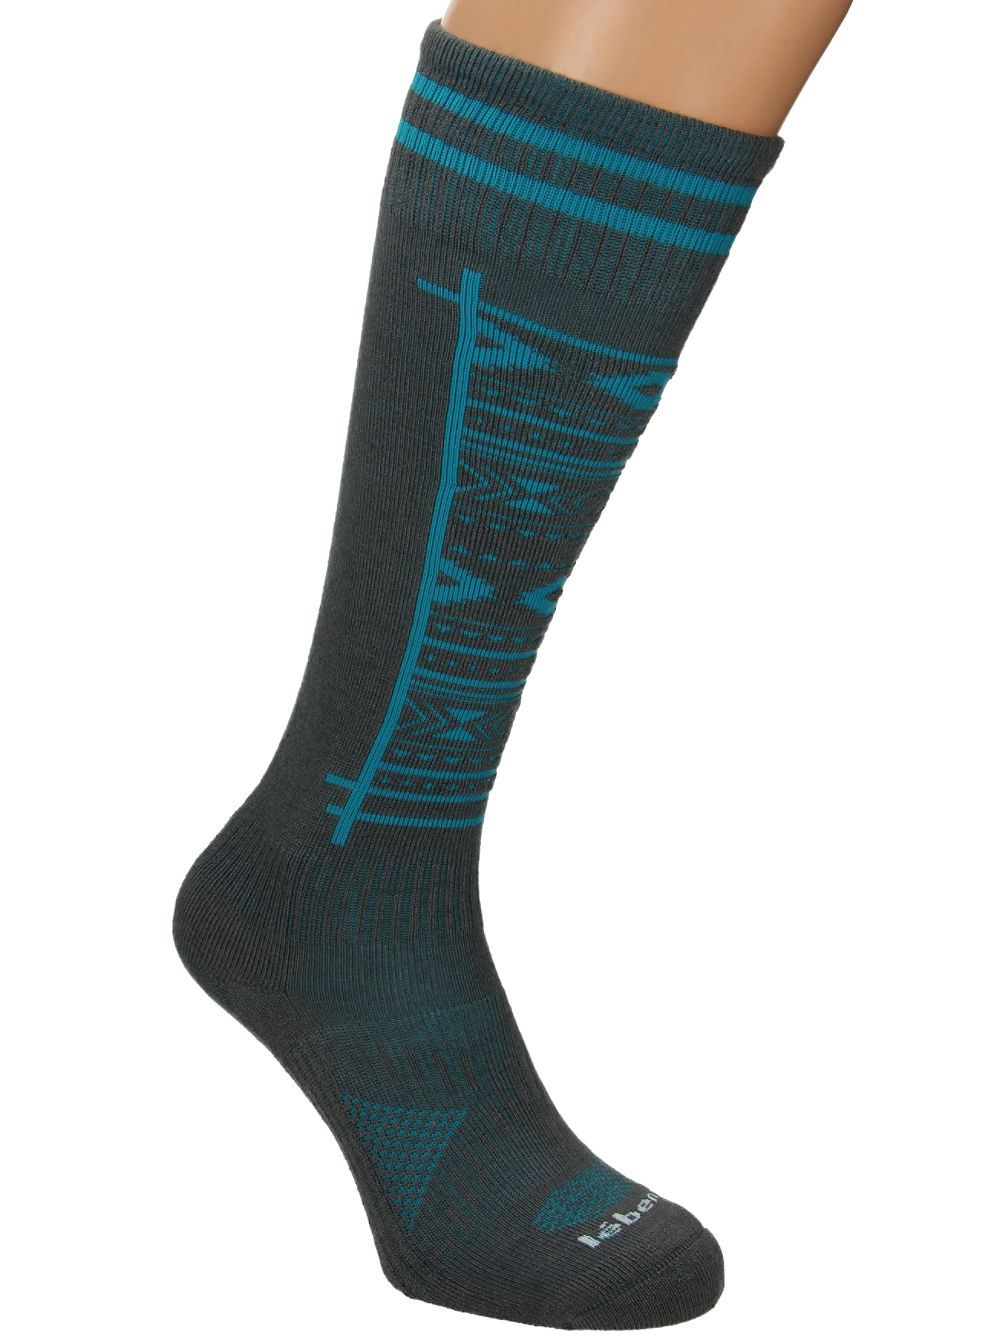 Definitive Light Aztec Socks